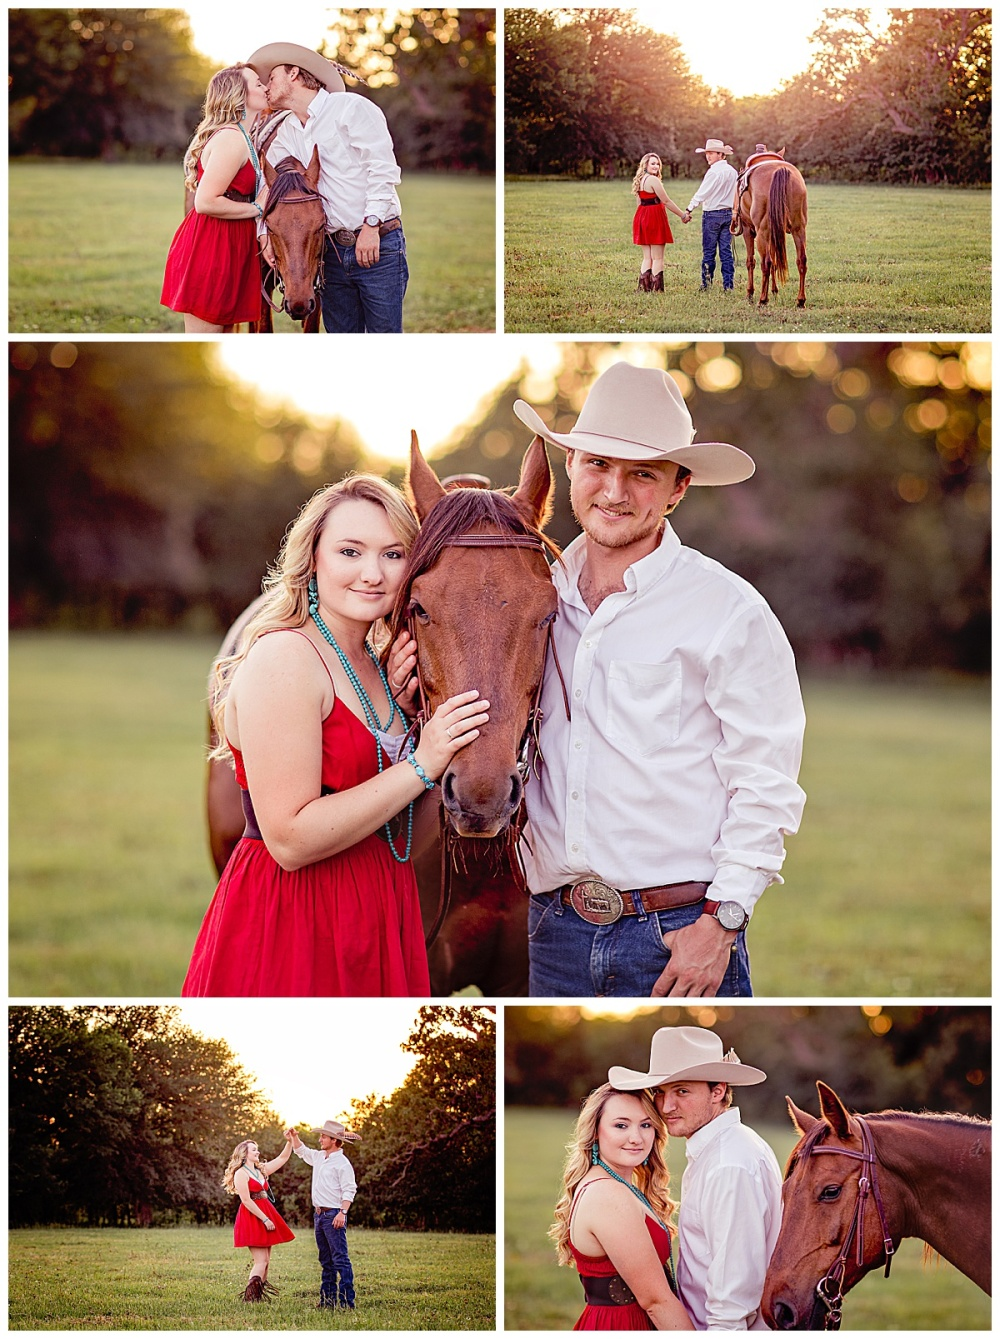 Rustic-Engagement-Session-Horse-Texas-Sunset-Carly-Barton-Photography_0009.jpg